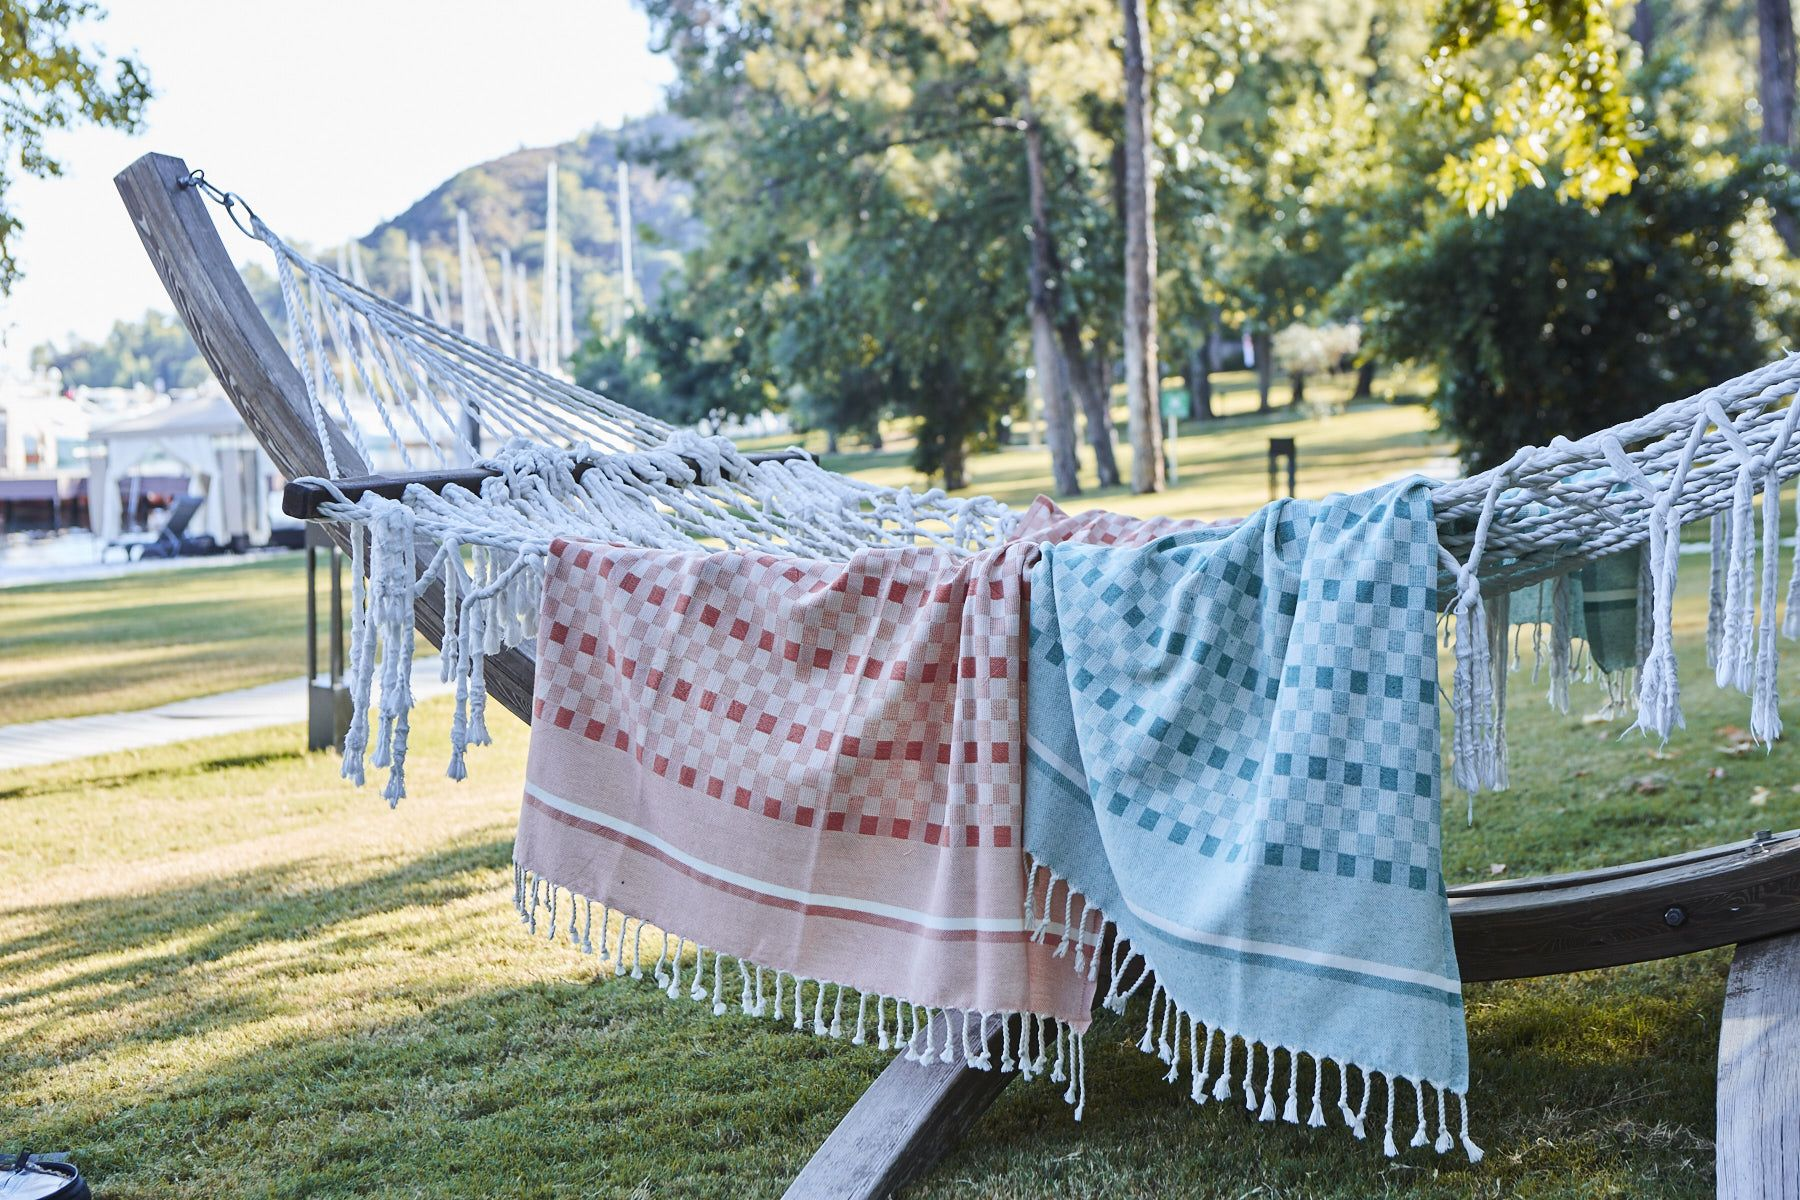 Celebrate this summer with Chess Turkish Picnic Blankets. These perfect Picnic Blankets are great for your joyful outdoor activities and can be used as a throw or a beach towel as well.